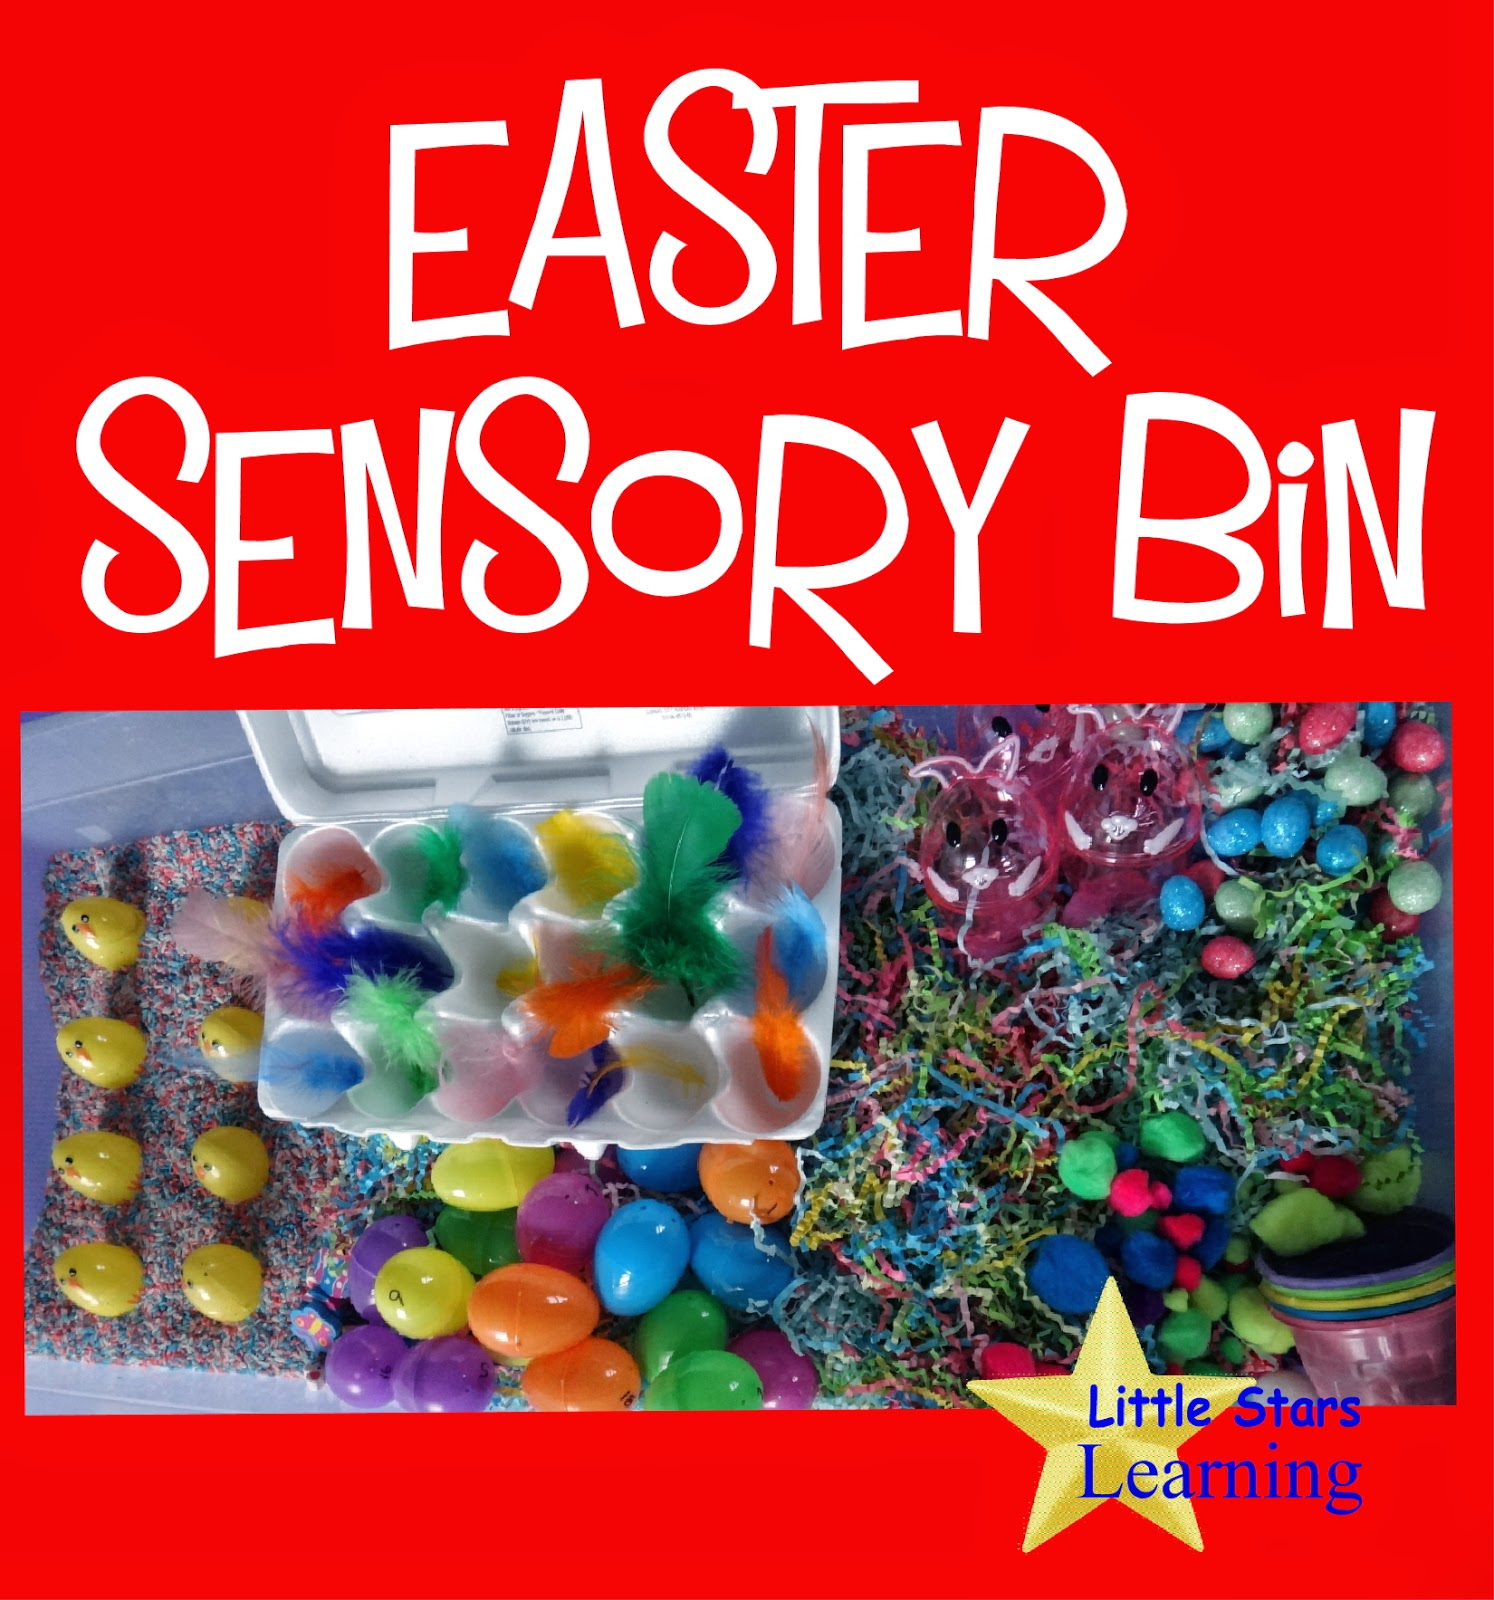 Easter sensory bin with learning activities